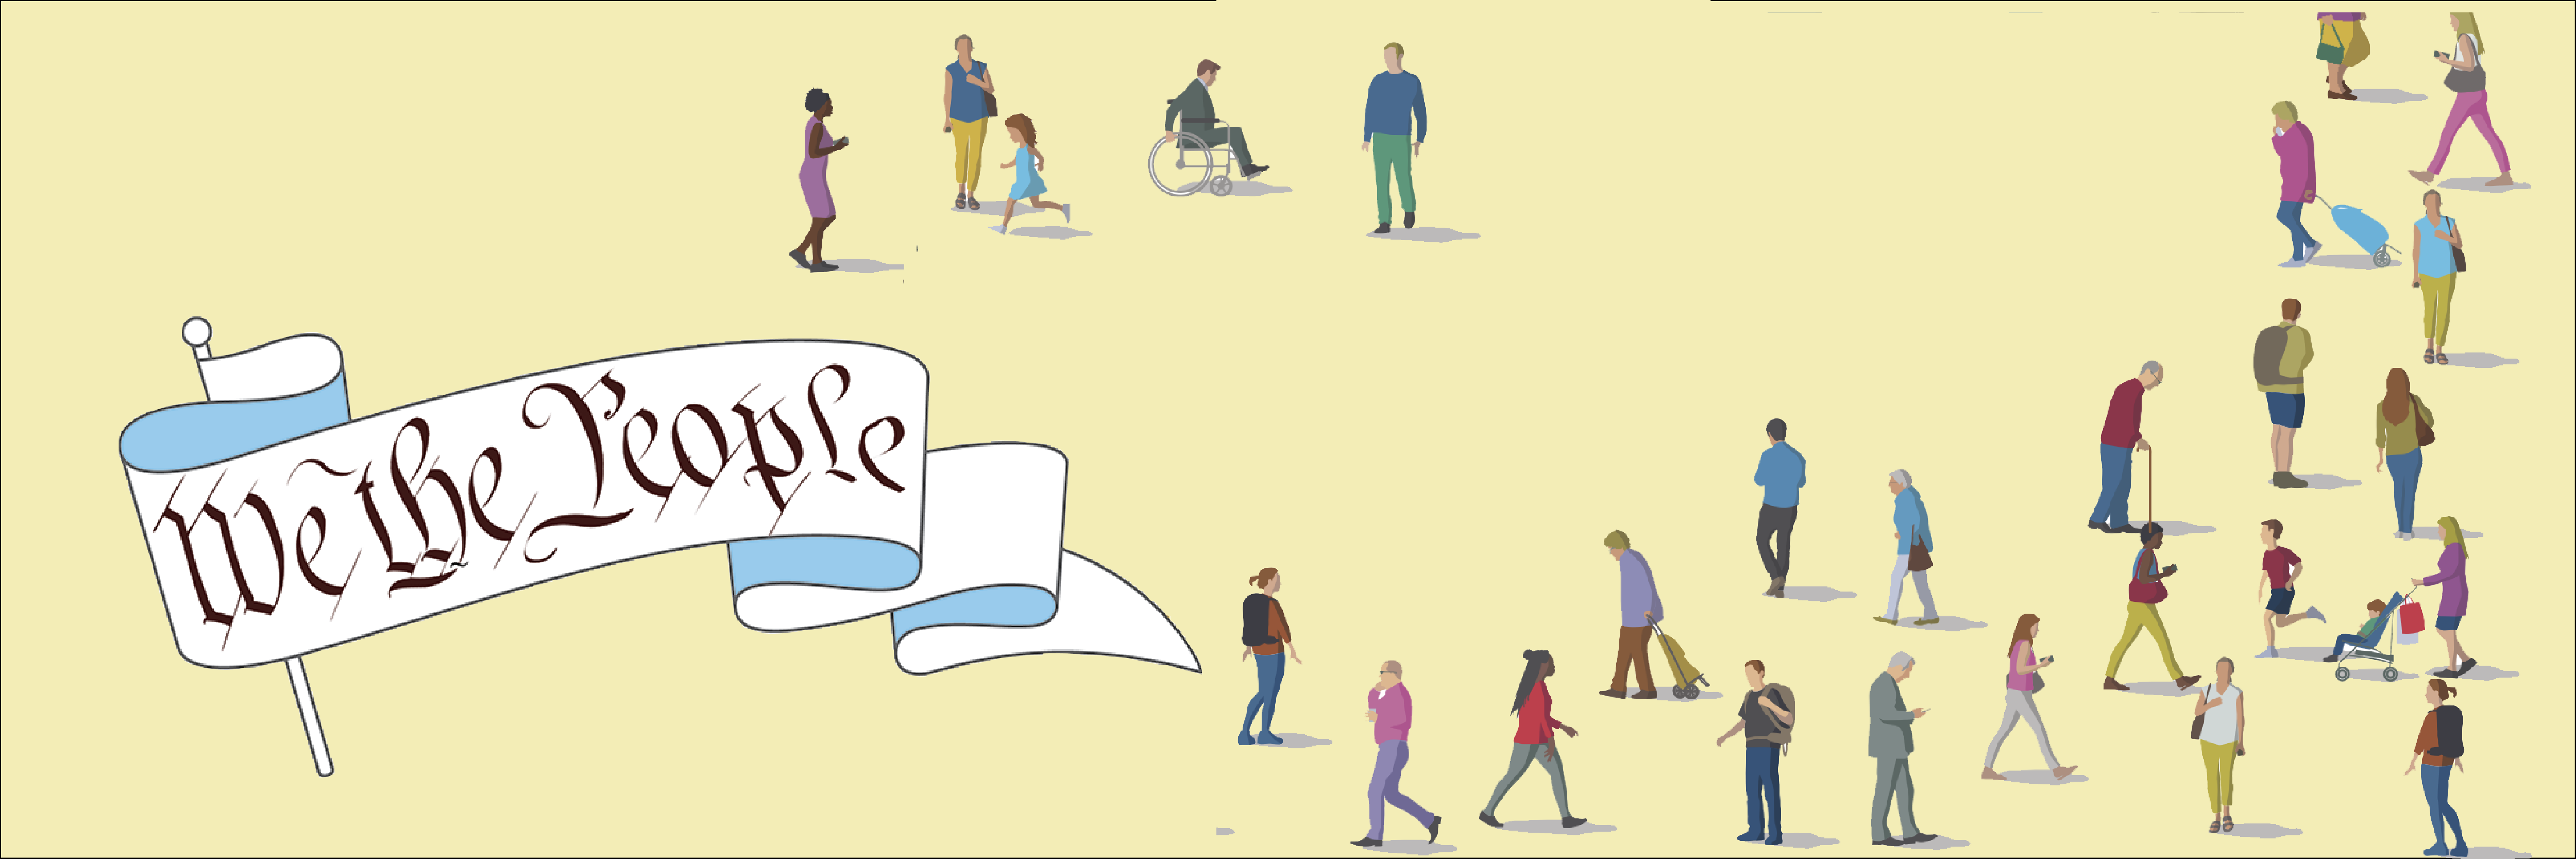 We the People banner with small diverse illustrated people